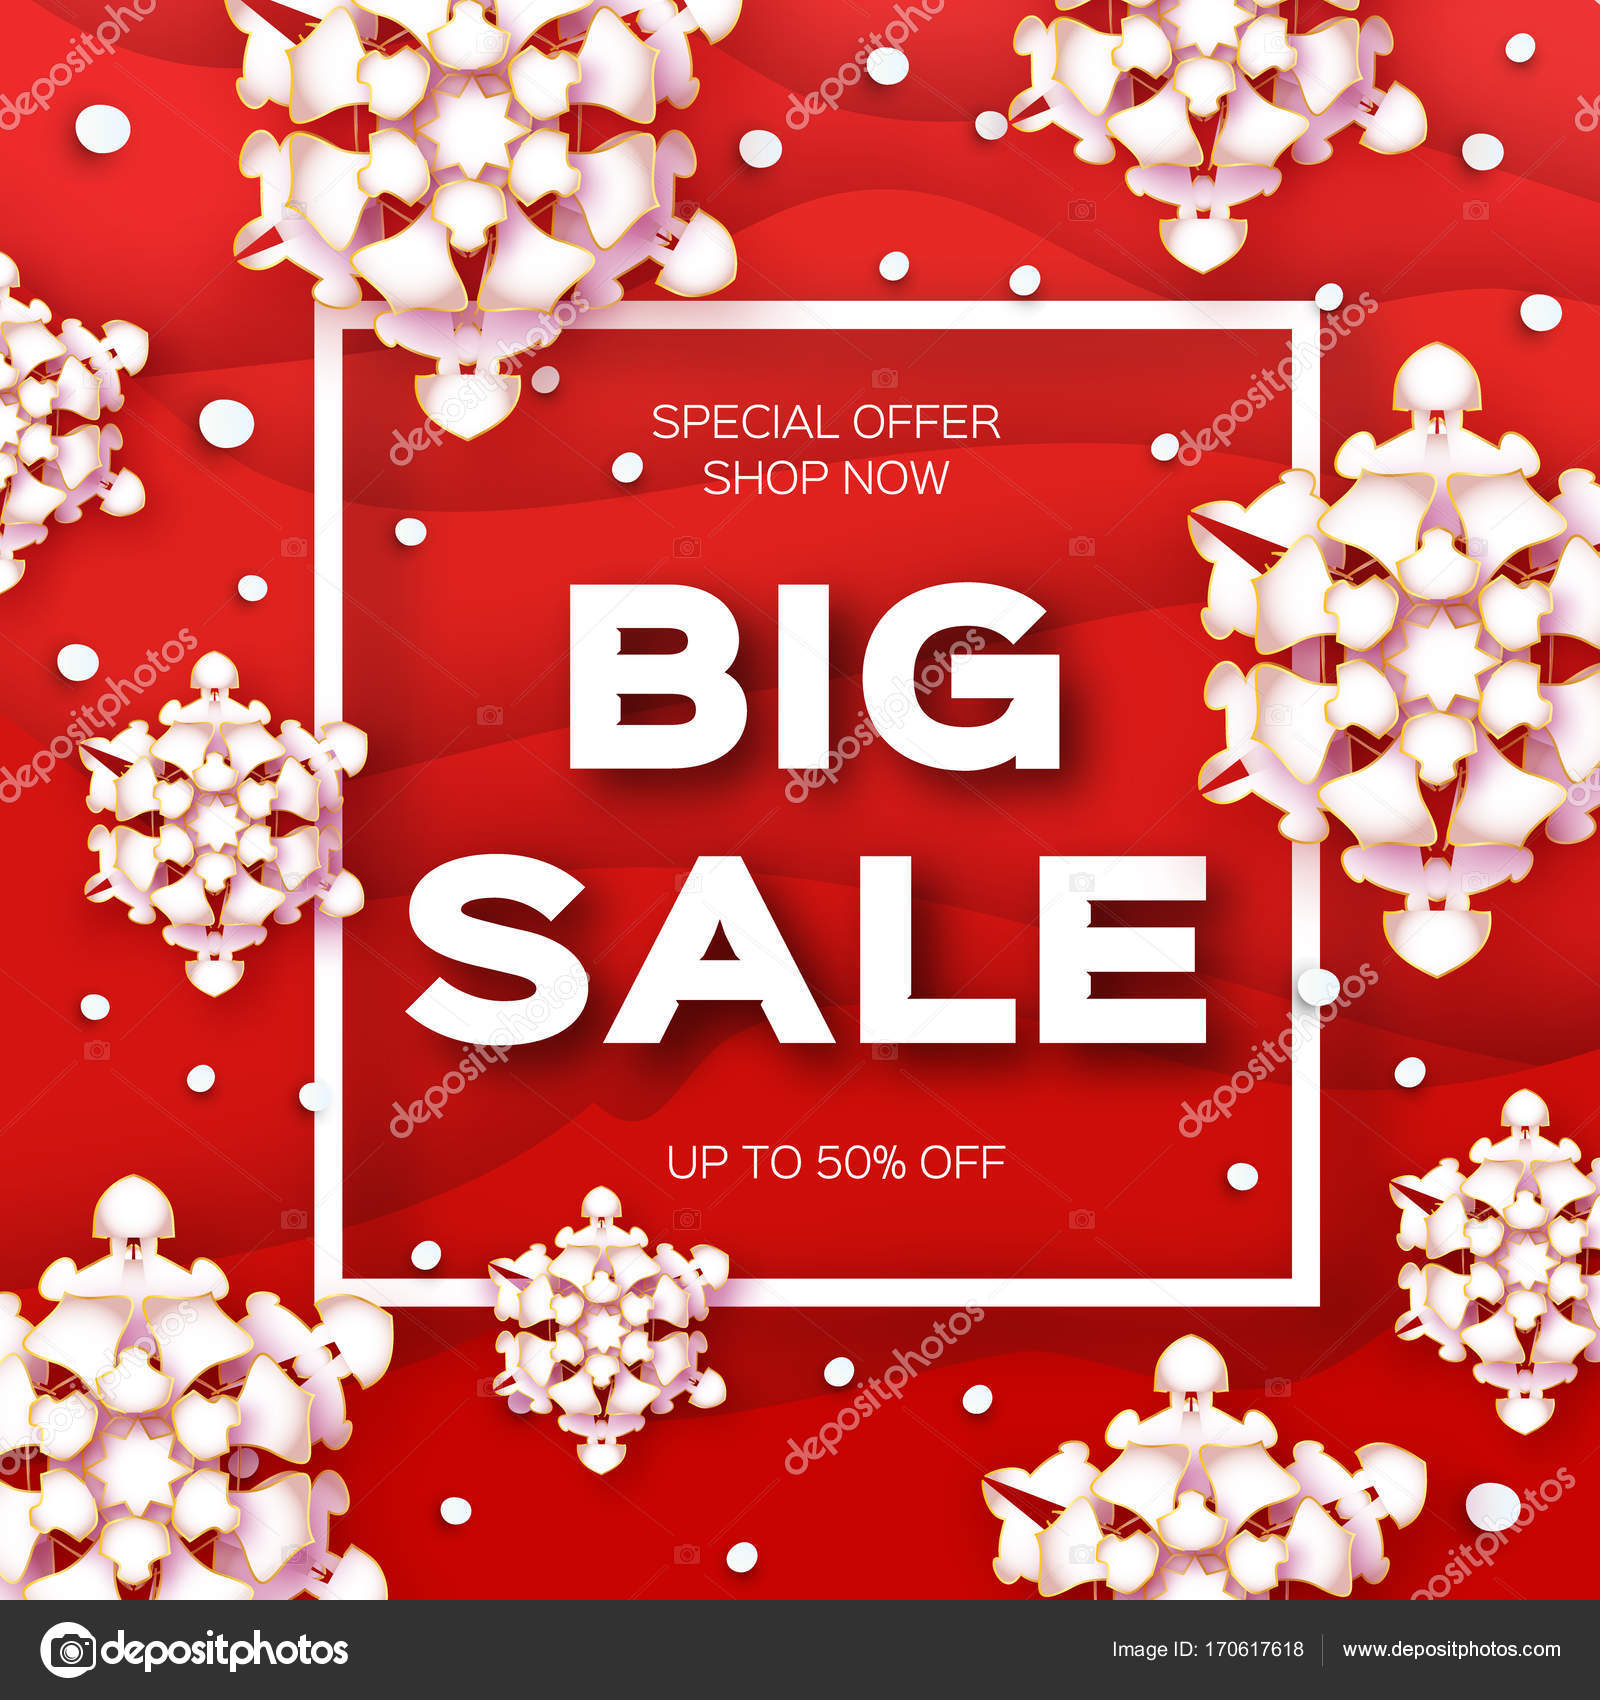 Merry Christmas Big Sale For Promotion Paper Cut Snowflakes Banner